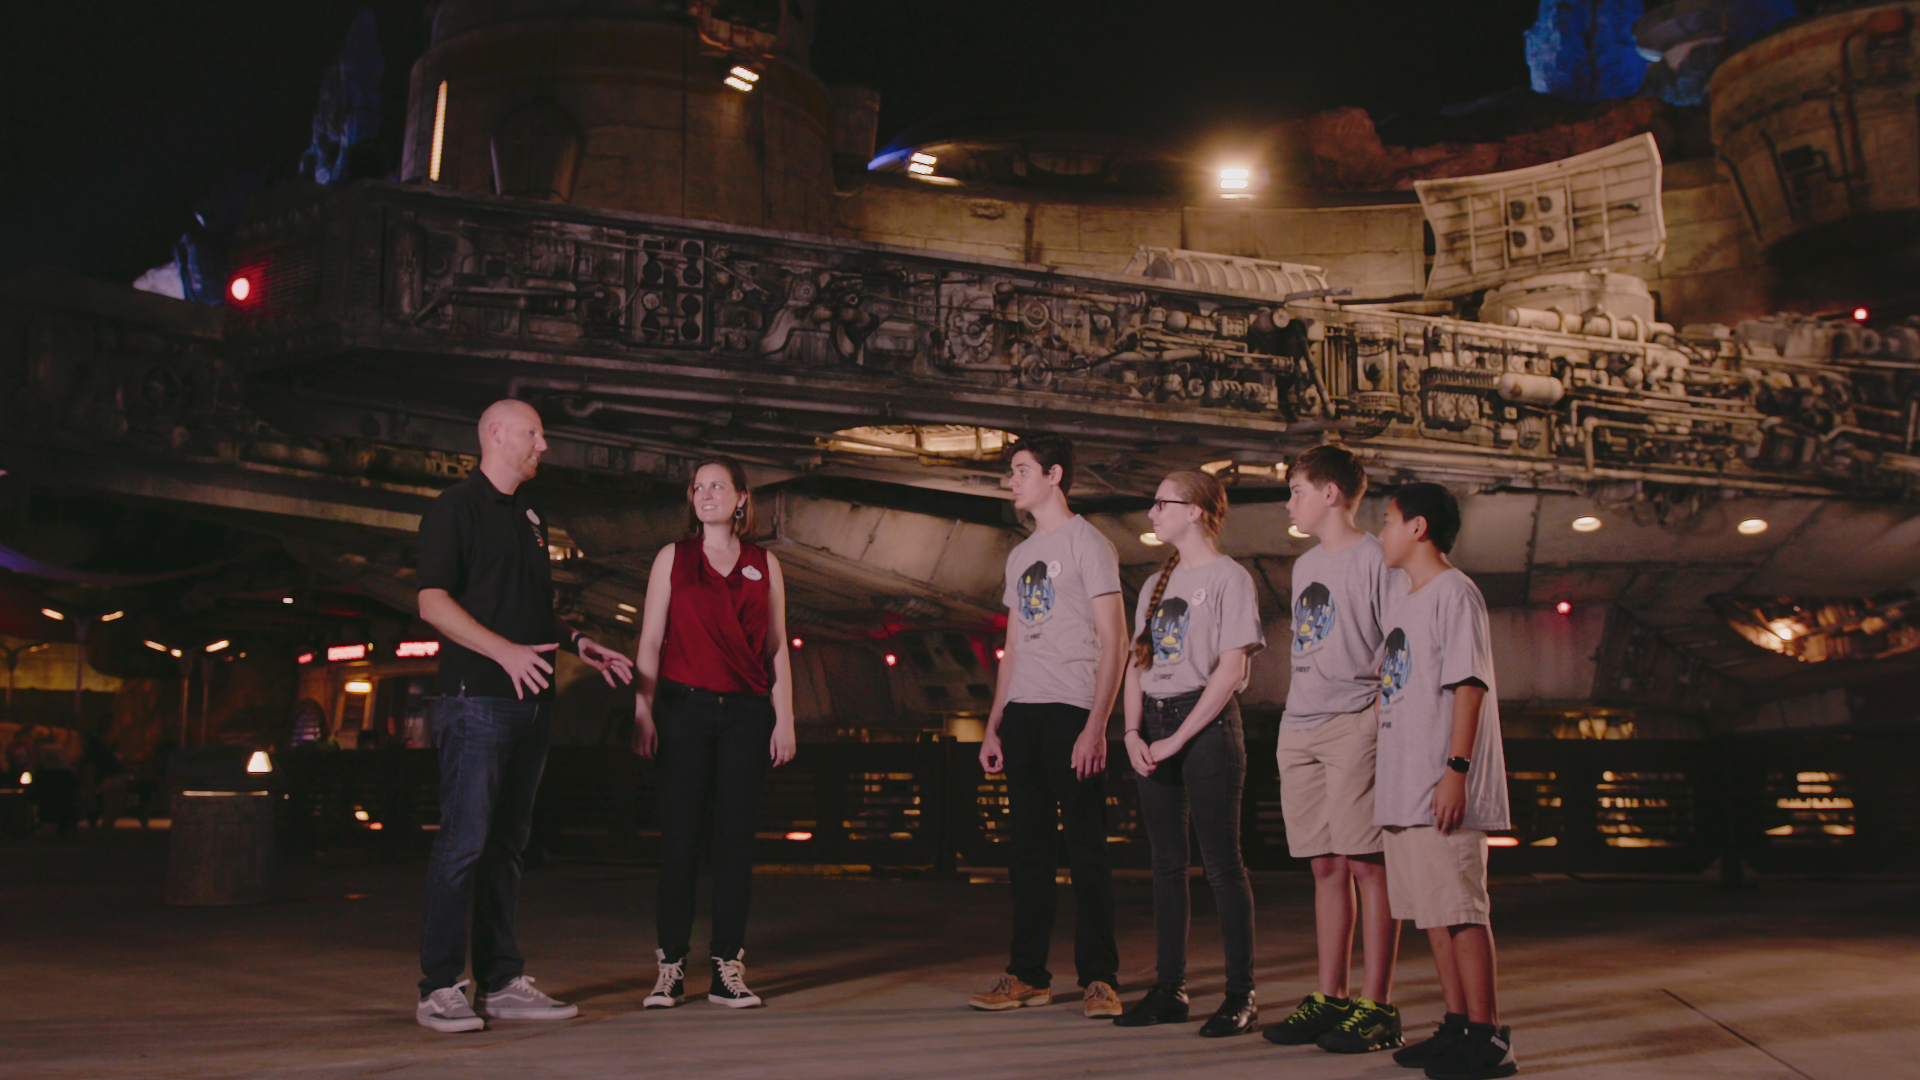 FIRST students standing in front of the Millennium Falcon with Disney Imagineers